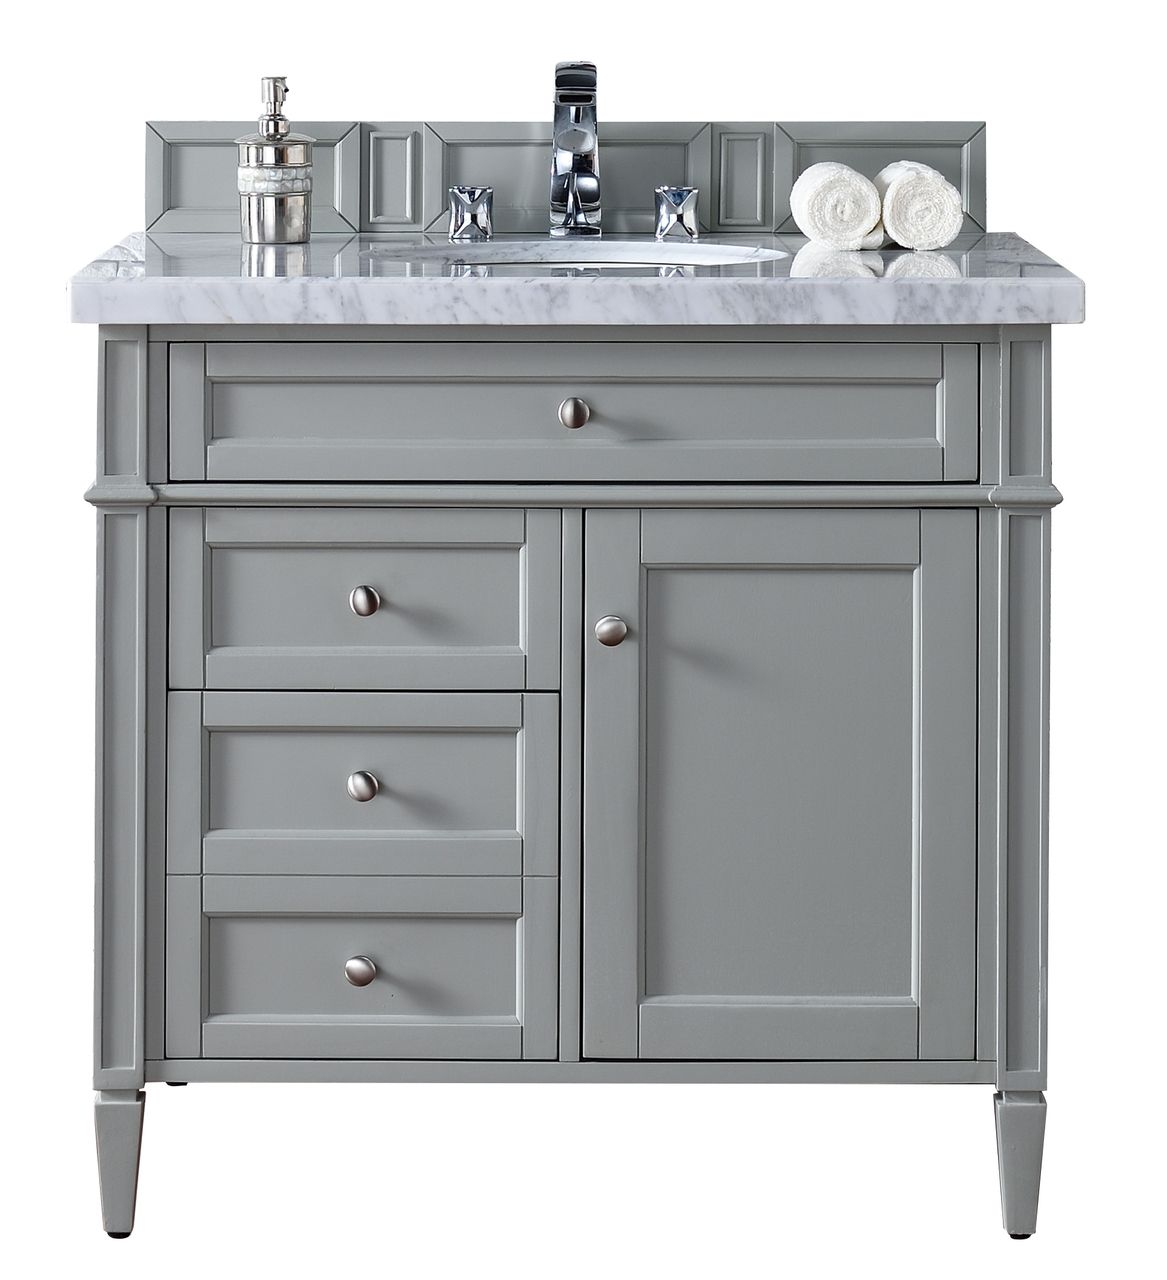 Brittany 36 Urban Gray Bathroom Vanity James Martin Grey Bathroom Vanity Single Bathroom Vanity Bathroom Vanity Base